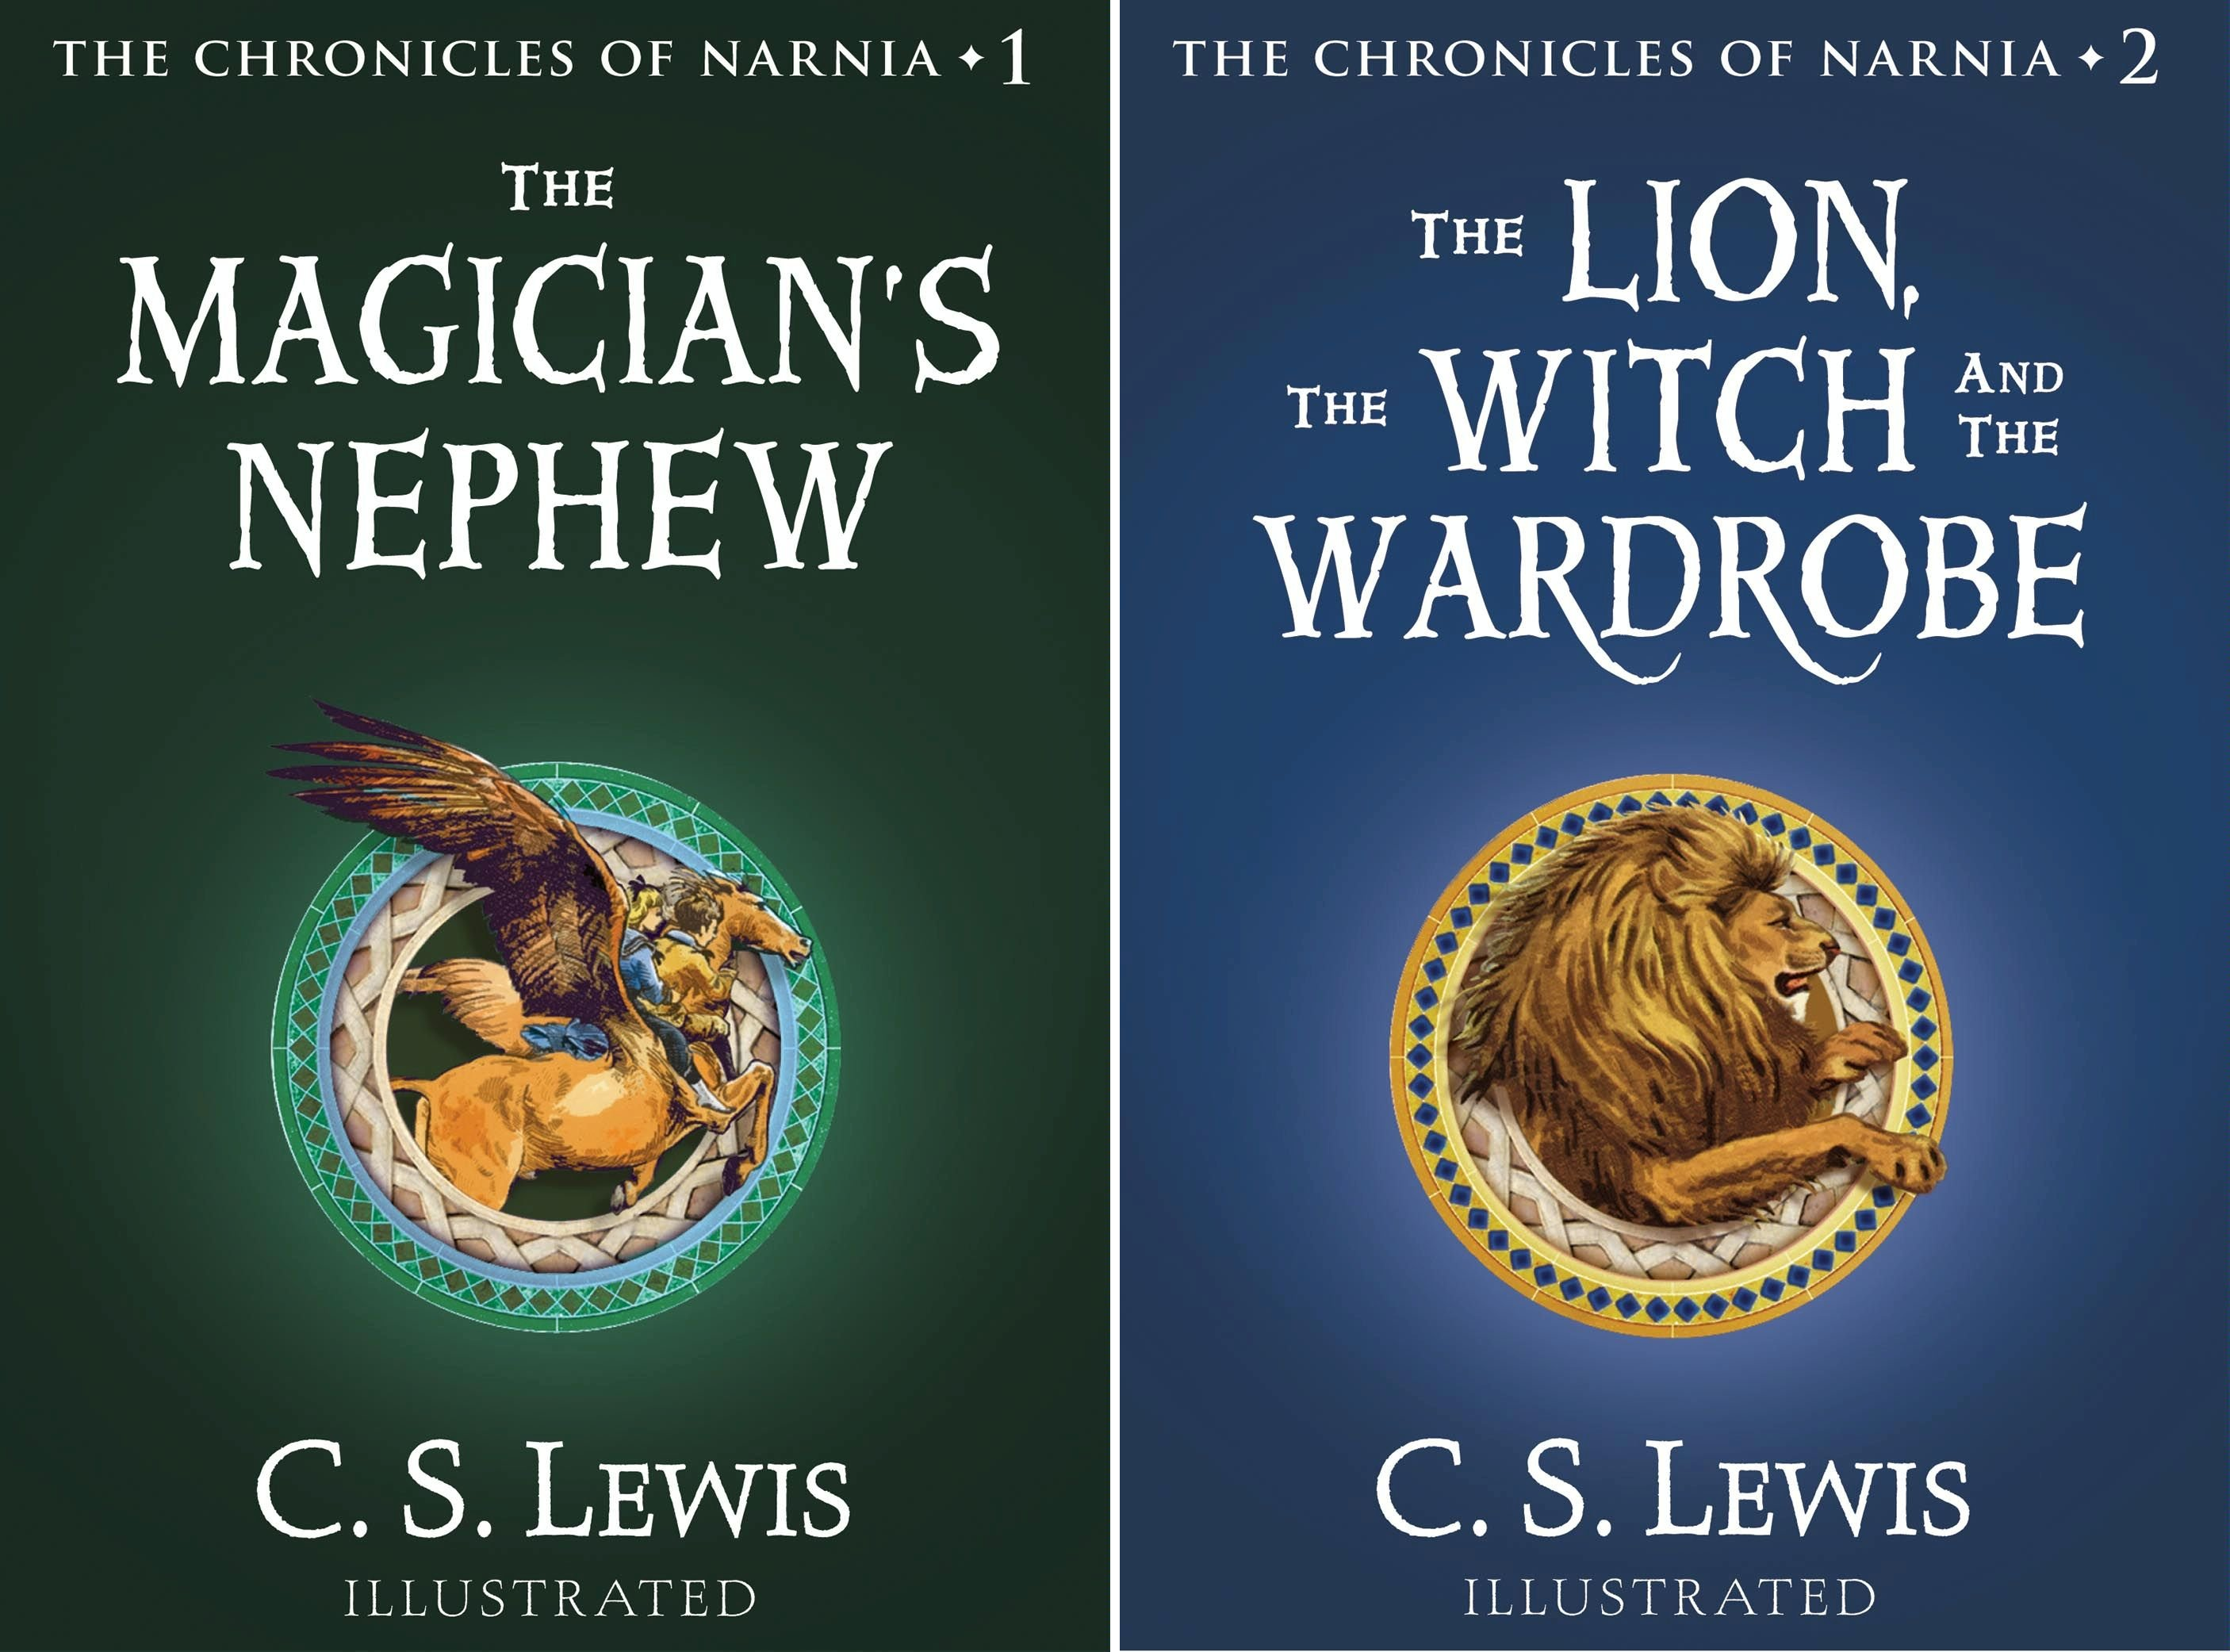 Top 1 chronicles of narnia book set kindle